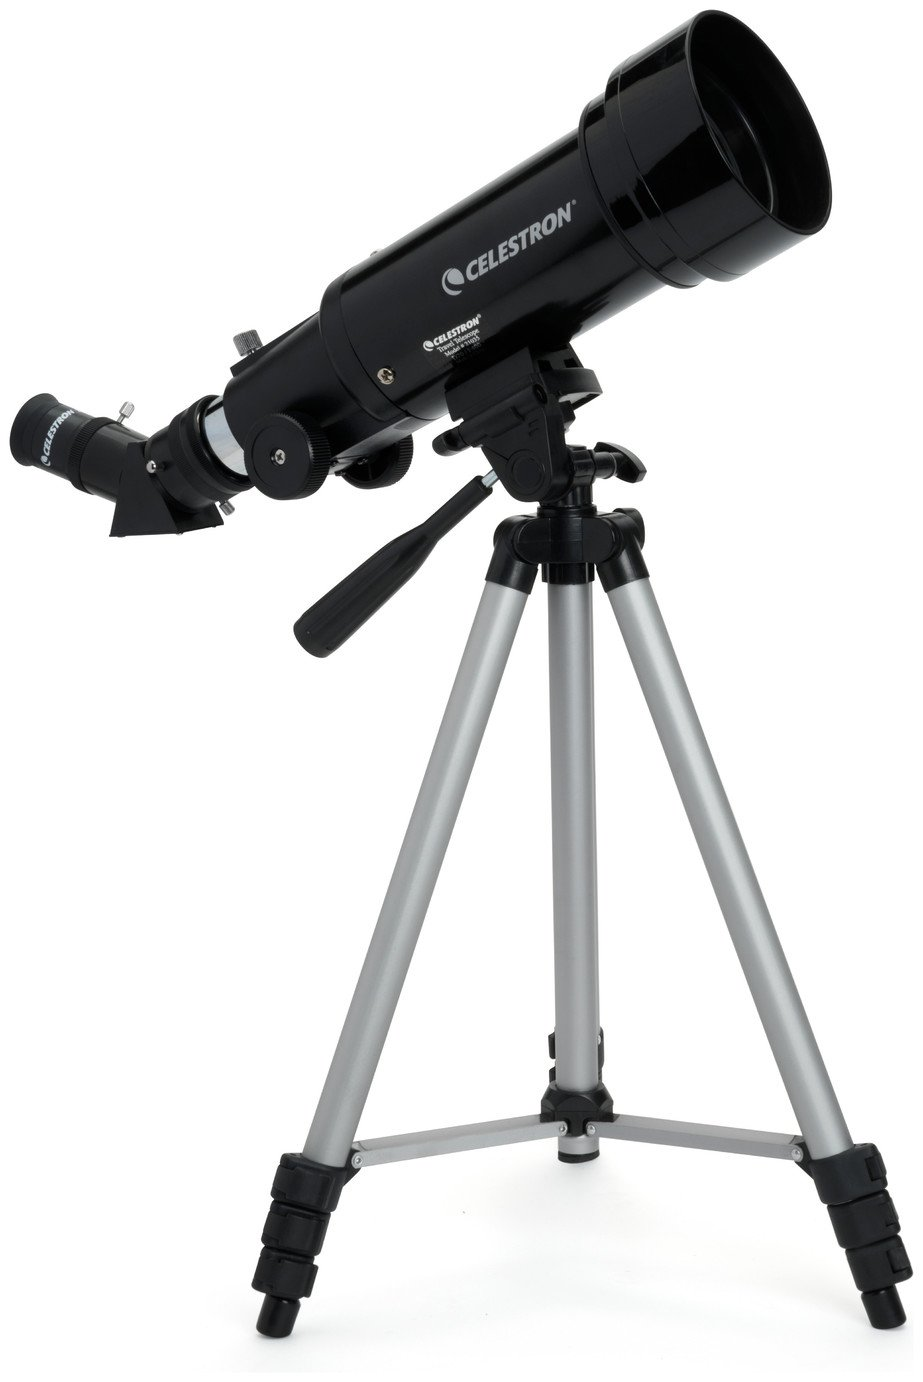 Celestron - Travelscope - 70 Outfit- Telescope Kit